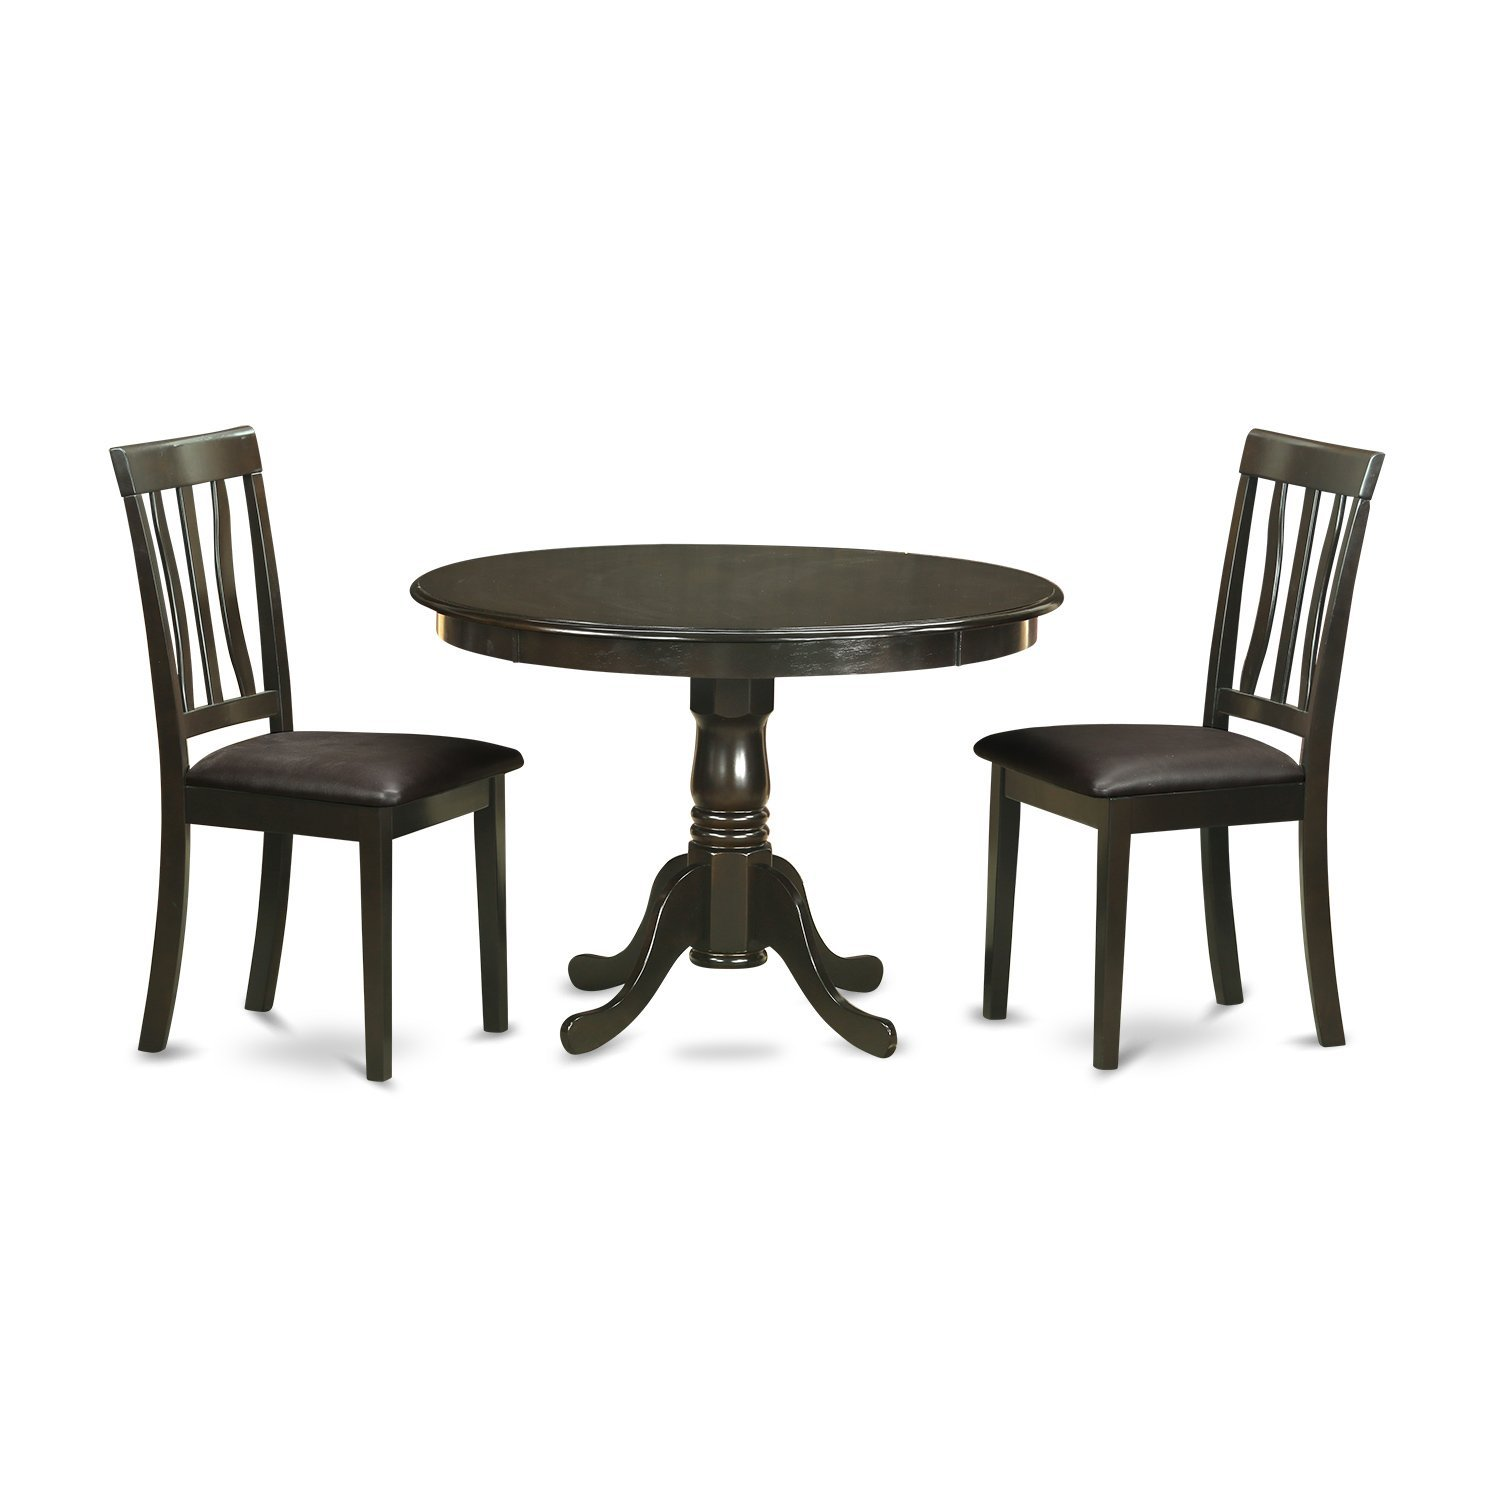 East West Furniture HLAN3-CAP-C 3-Piece Kitchen Nook Dining Table Set, Cappuccino Finish